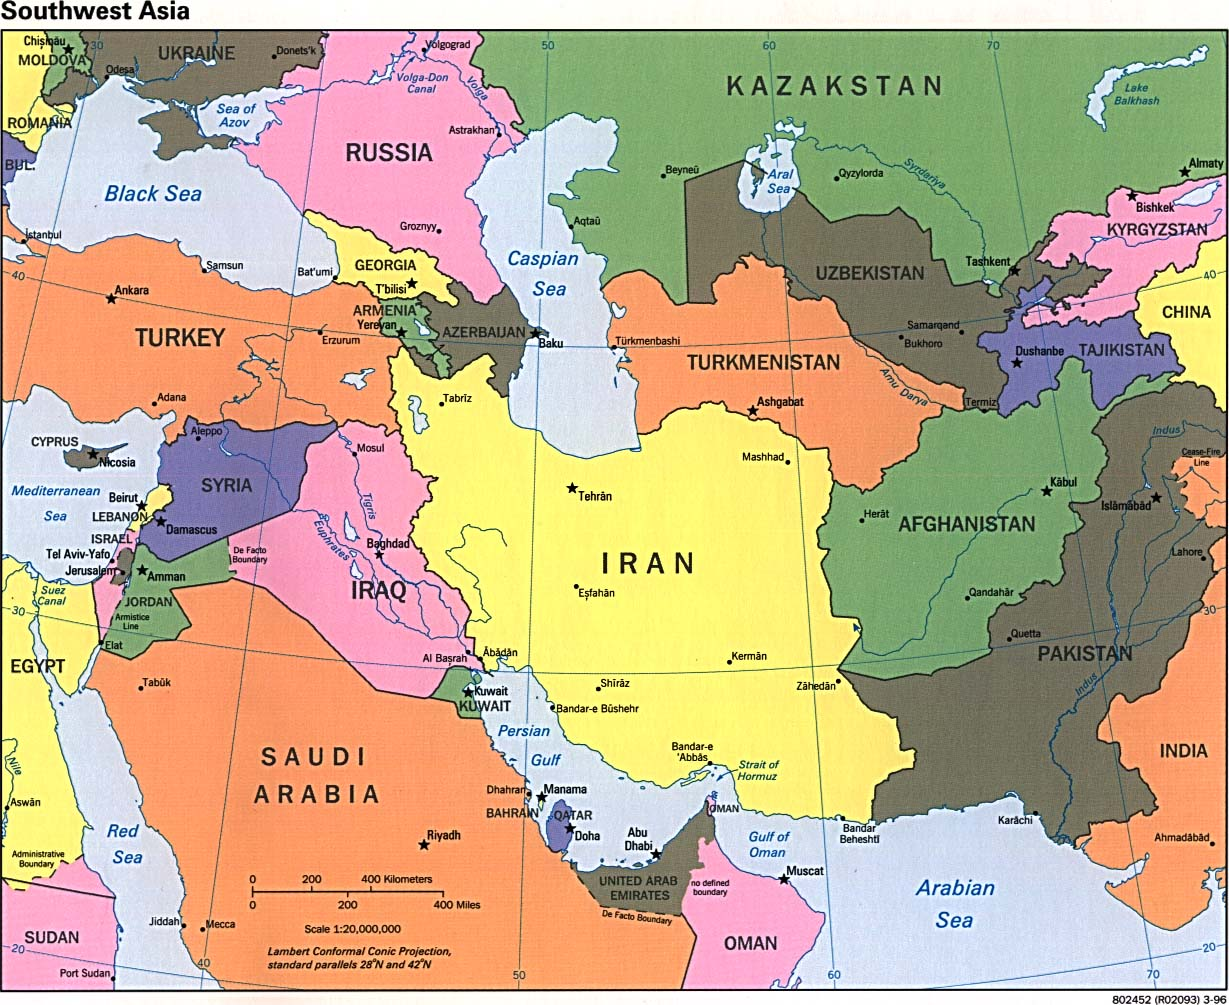 Map of Southwest Asia Political Map 1996 - mapa.owje.com